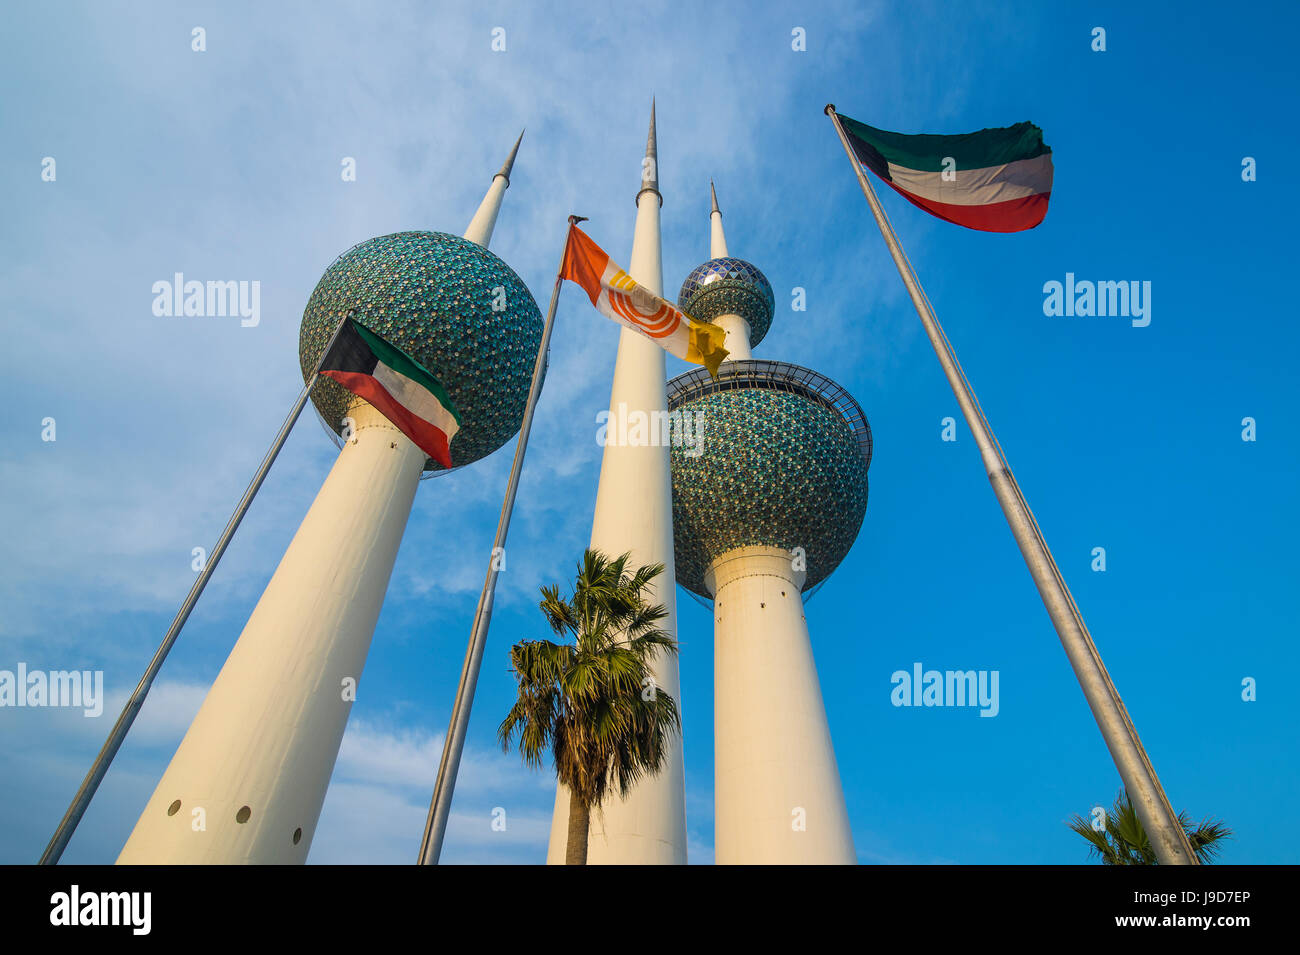 Landmark Kuwait towers in Kuwait City, Kuwait, Middle East - Stock Image